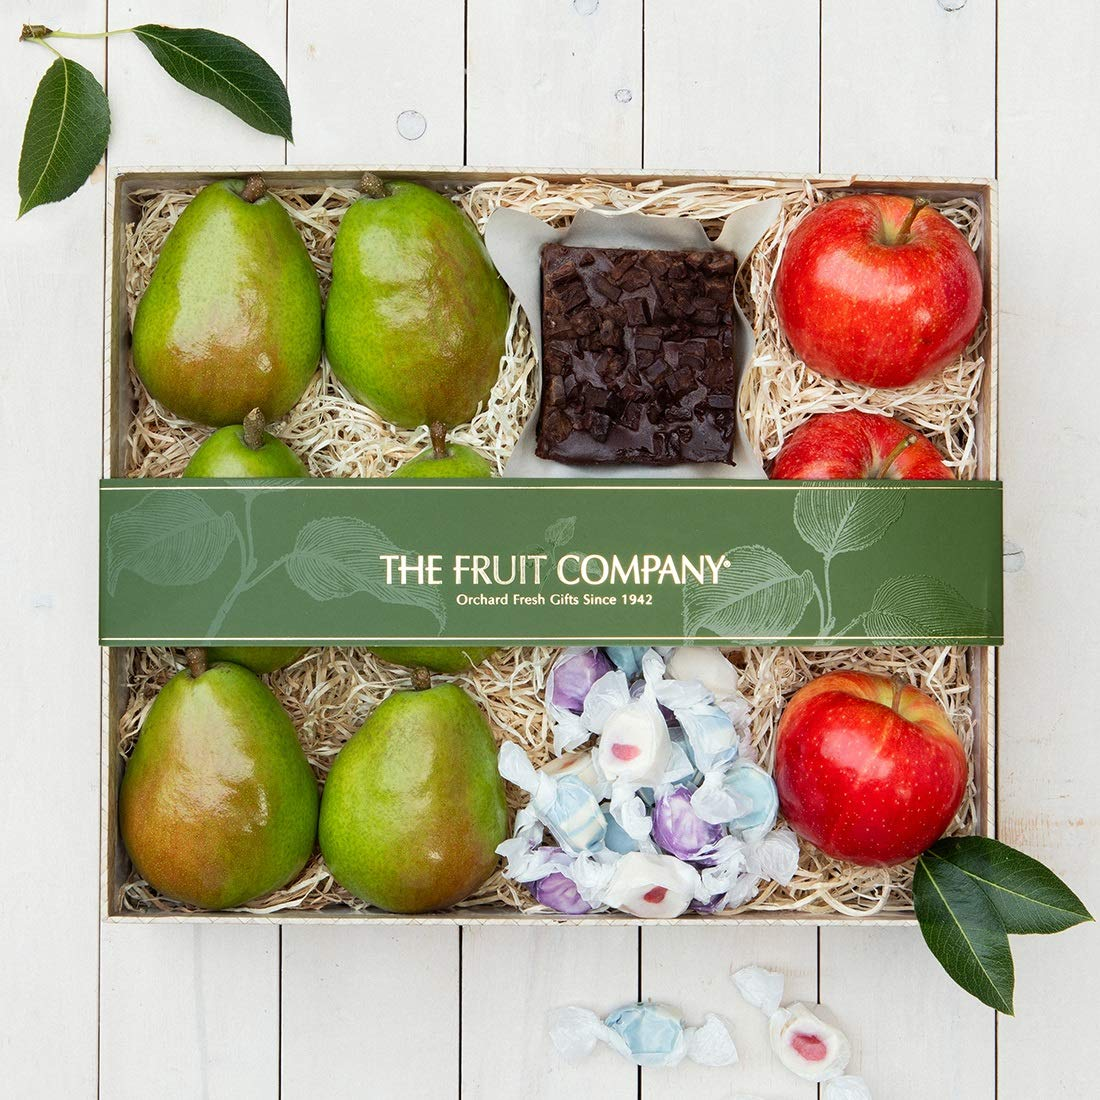 The Fruit Company - Oregon's Finest Summer Gift Box -9 Pieces Premium Fresh Fruit - Fuji Apples and Pears Chocolate Ganache Brownie & Fruit Inspired Taffy Comes in a Bamboo Print Box